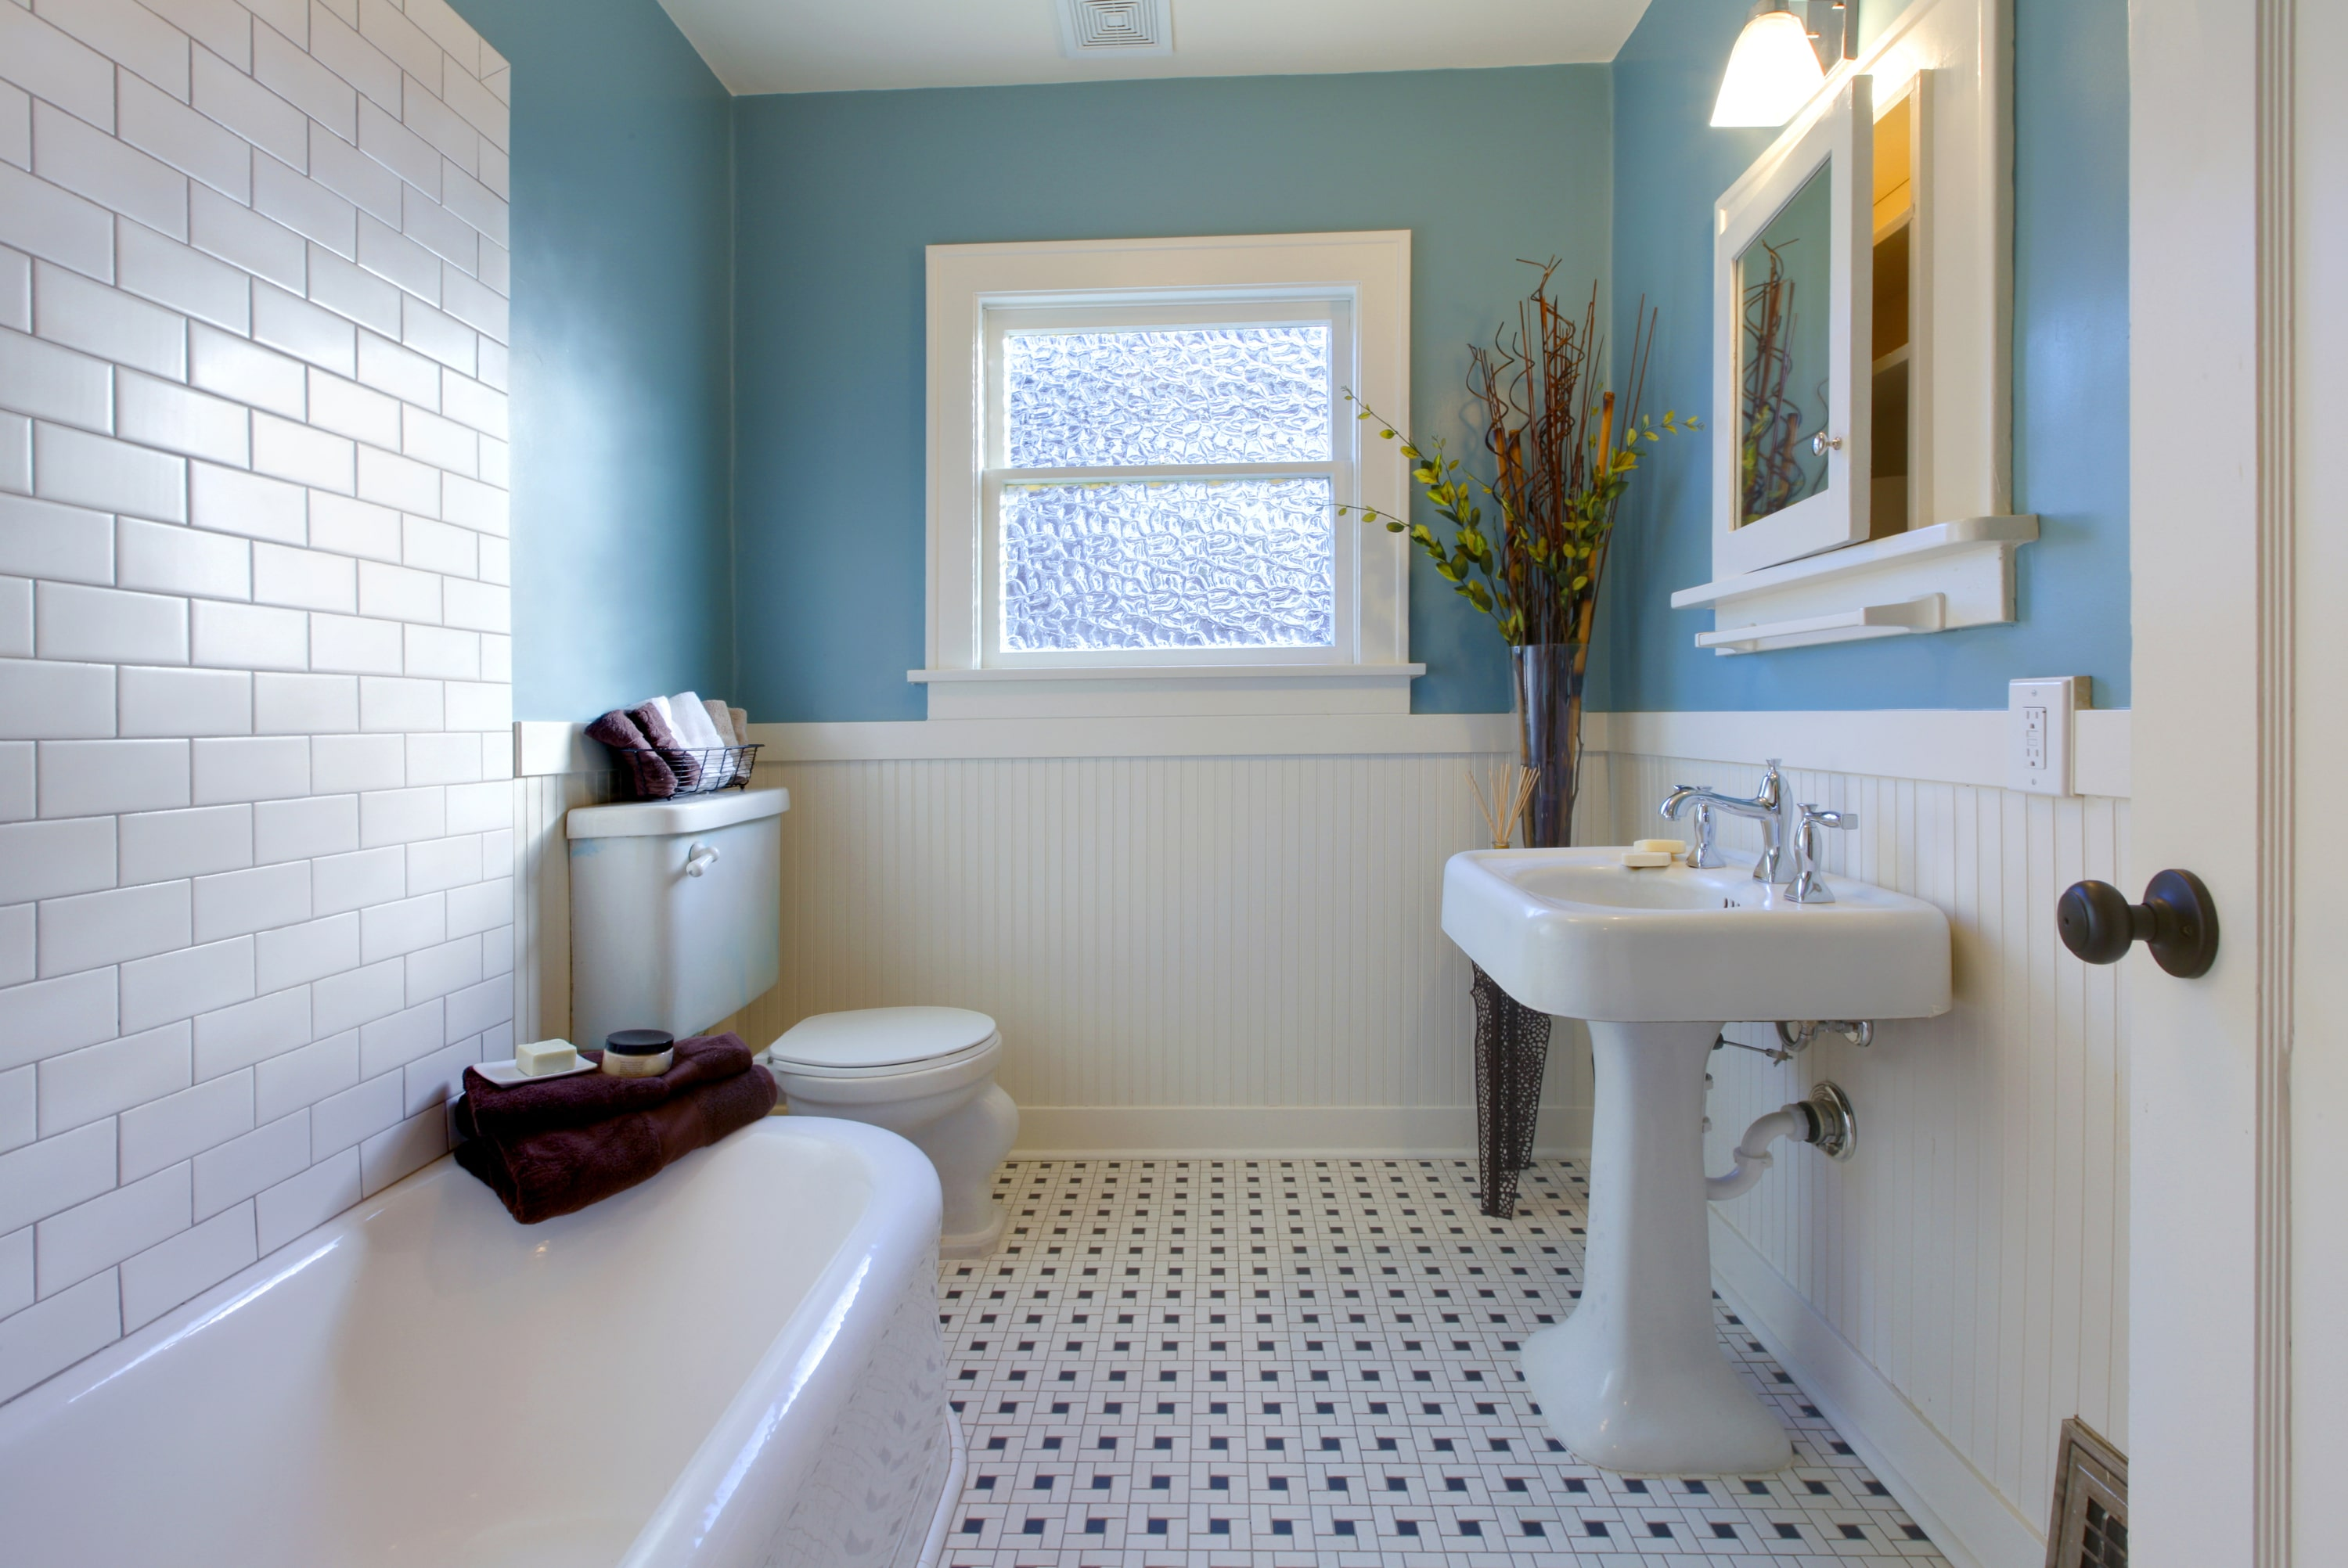 Bathroom 8 Bathroom Design Remodeling Ideas On A Budget